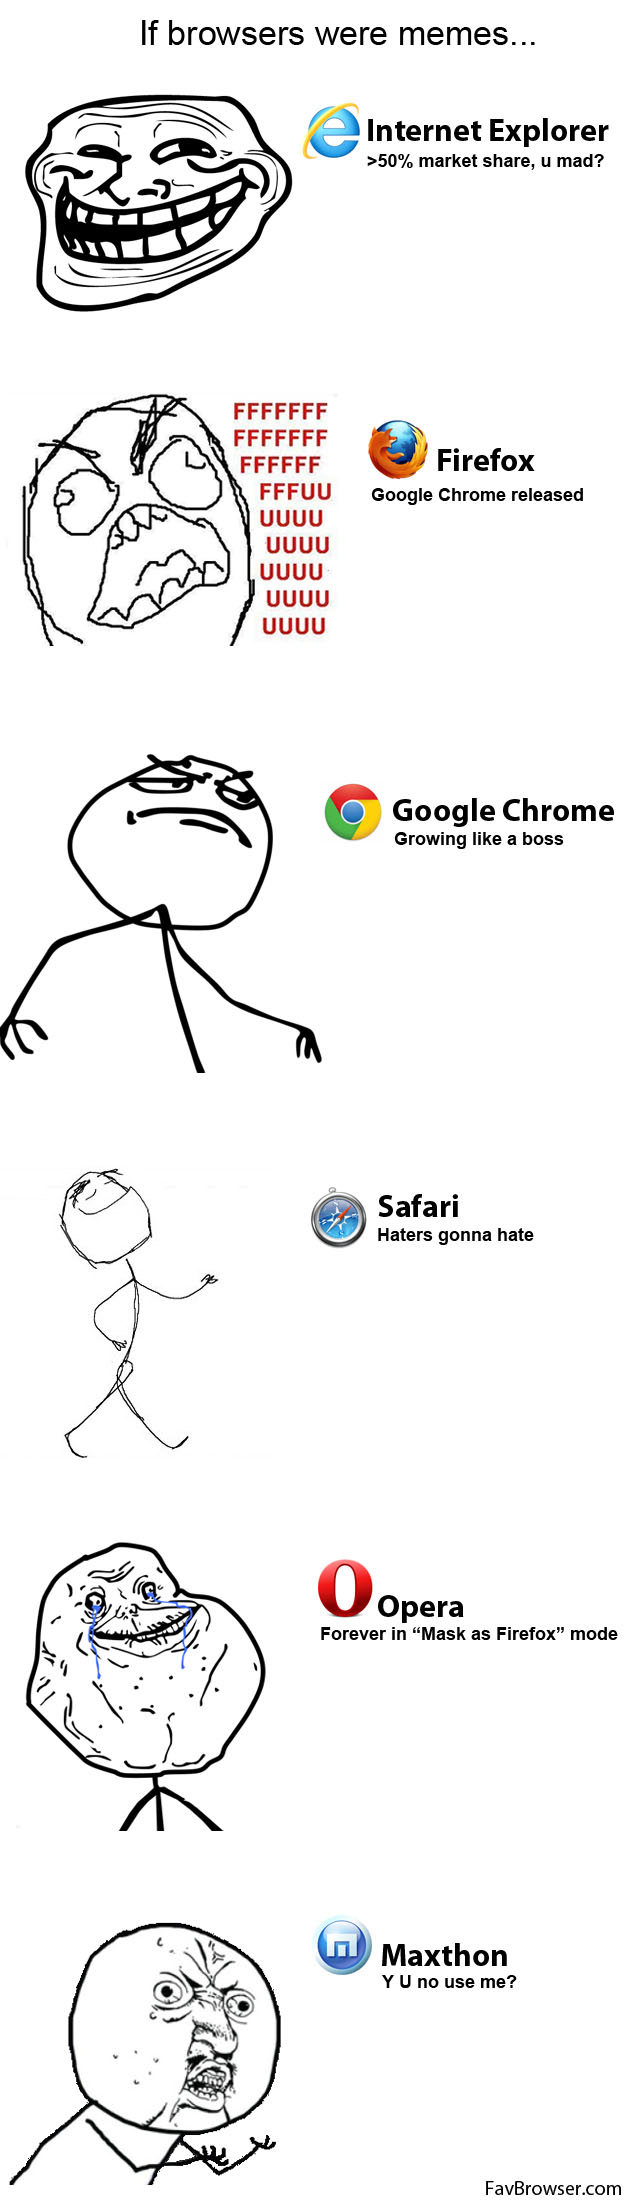 ... Explorer, Firefox, Google Chrome, Safari, Opera and Maxthon